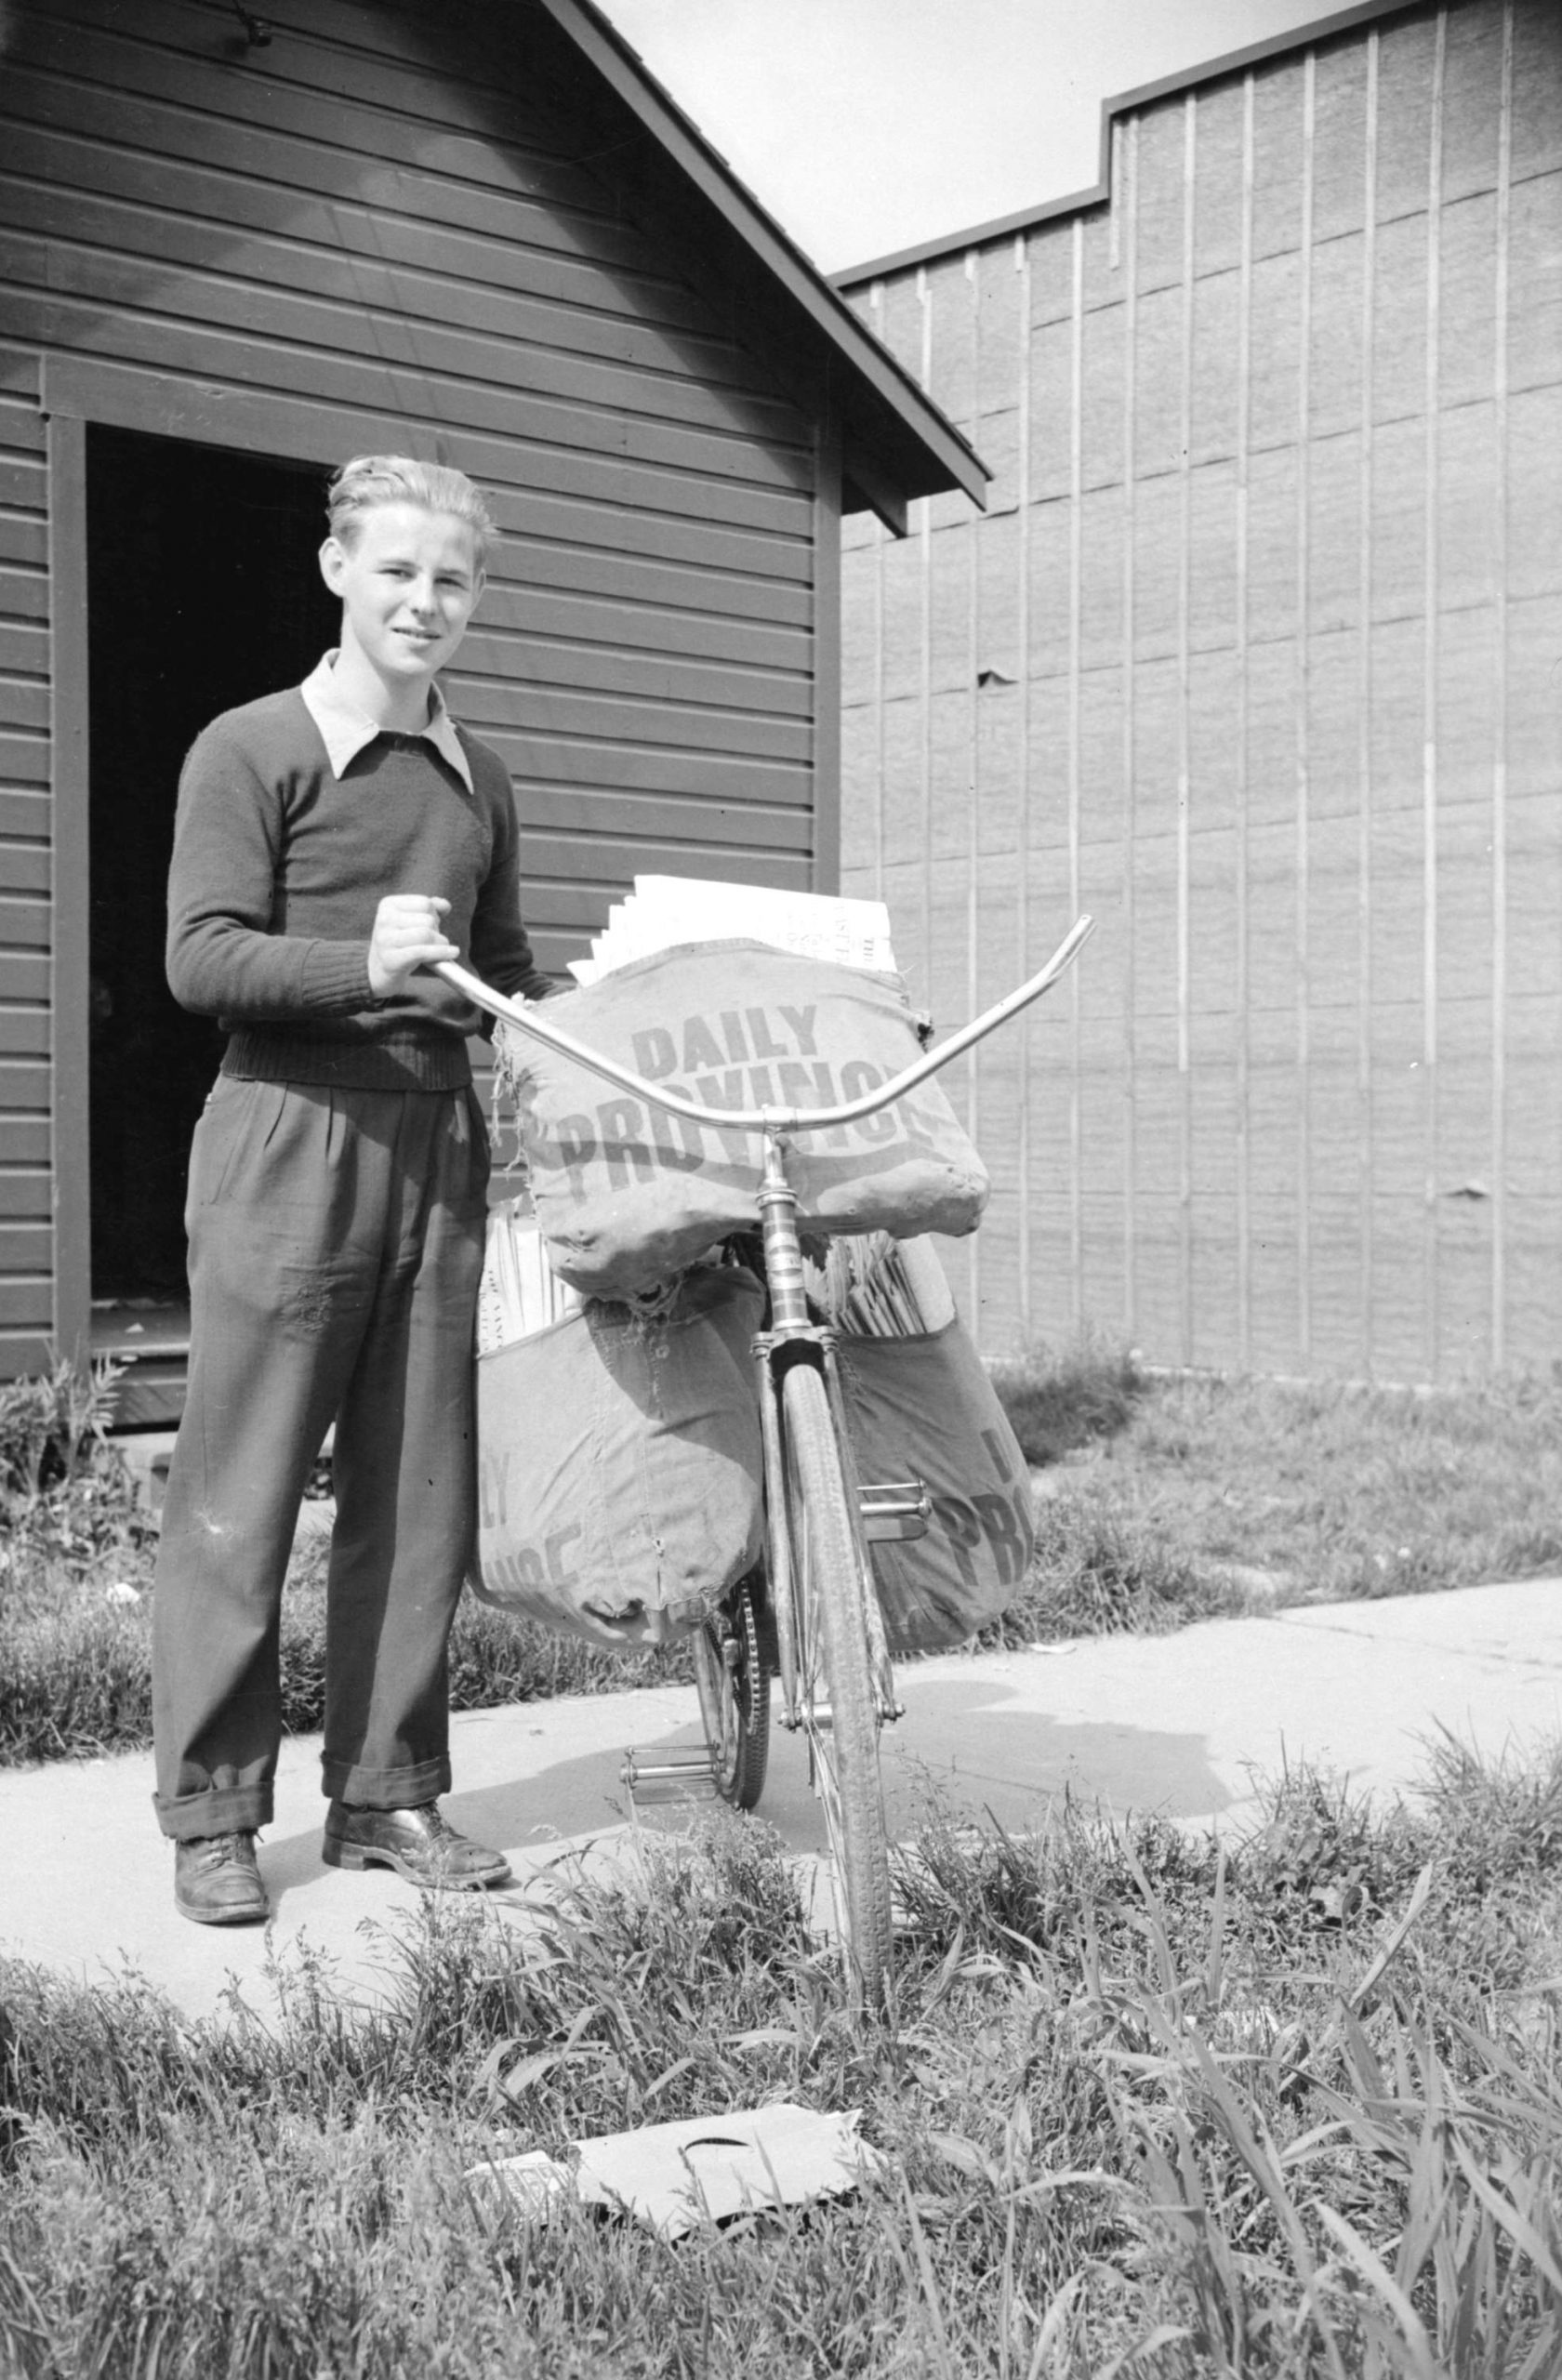 Newspaper delivery boy. Reference code: AM1184-S3-: CVA 1184-862